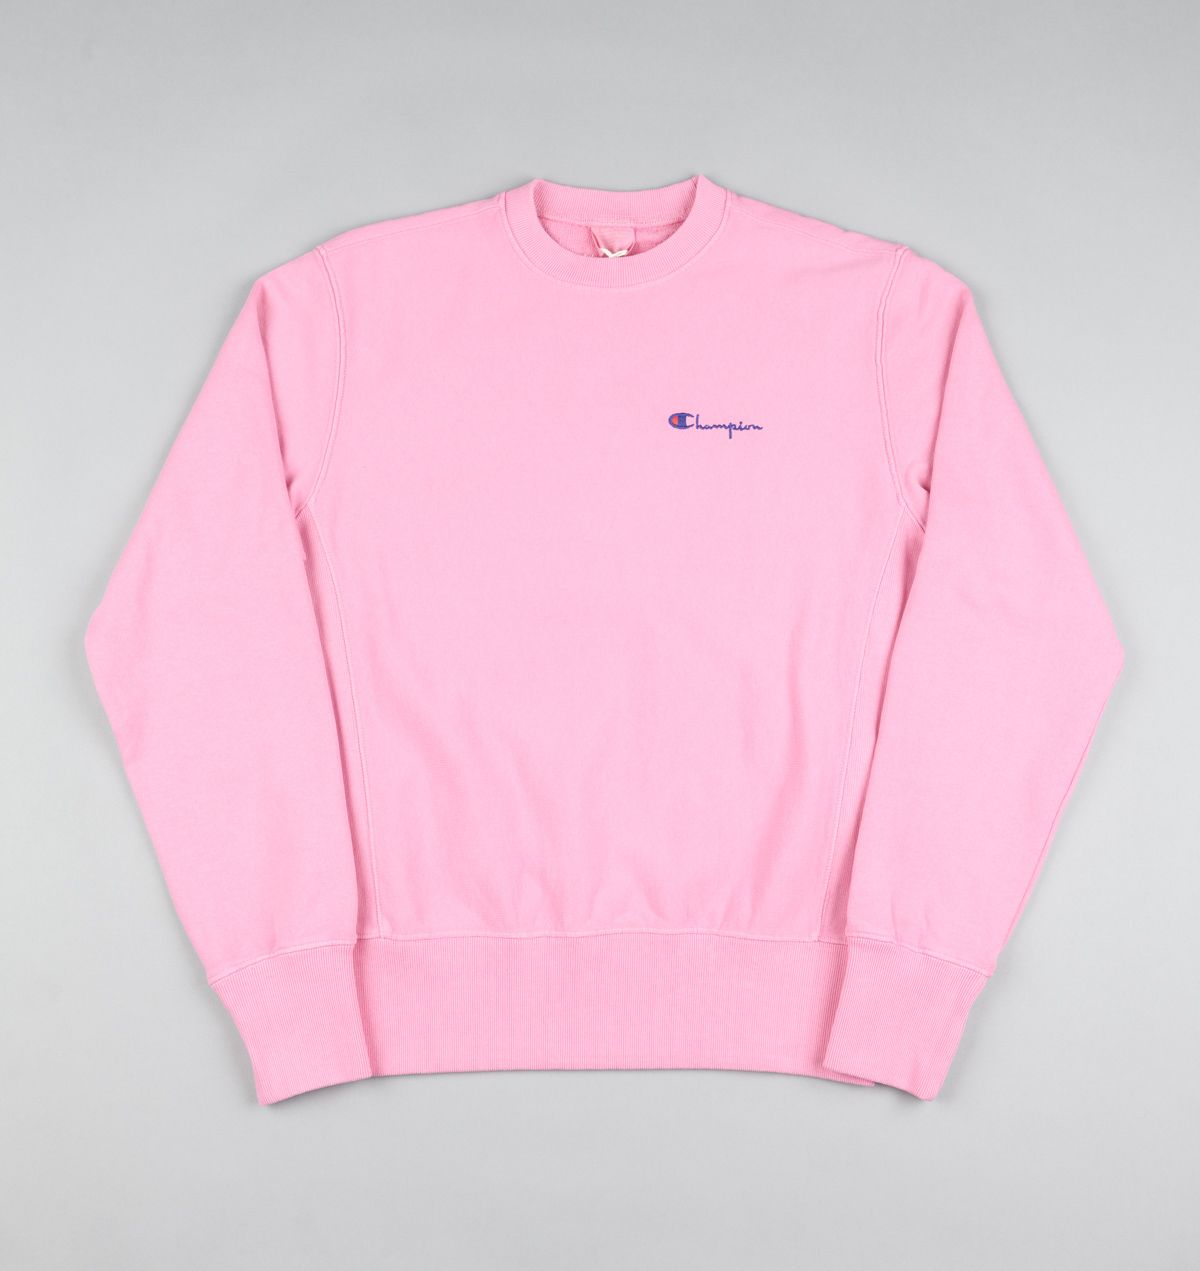 Champion Sweatshirt | The o'jays, Products and Sweatshirts